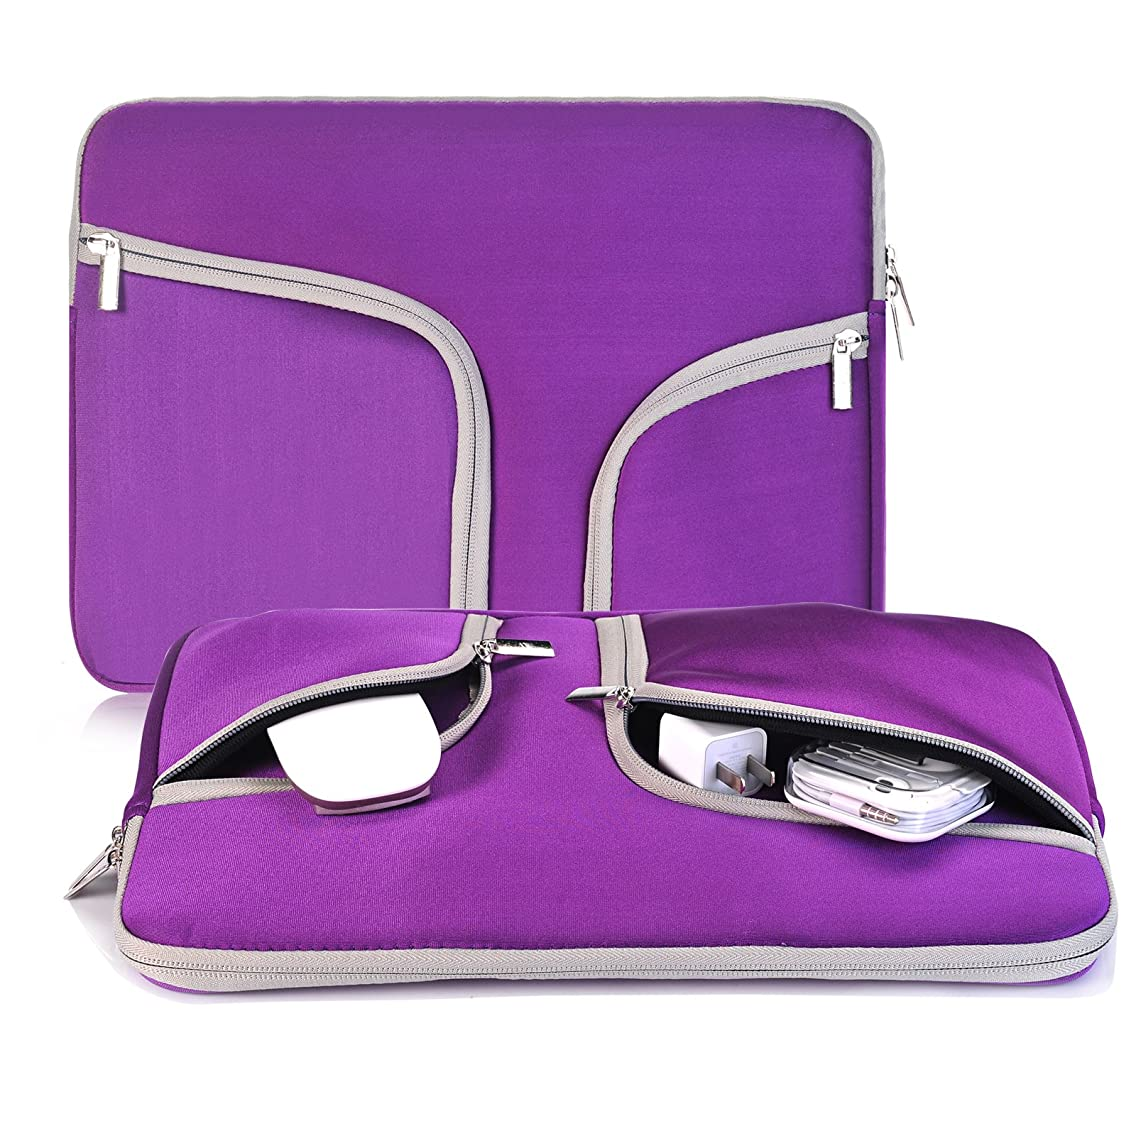 egiant Laptop Sleeve 14-15.4 inch,Water-Resistant Protective Notebook Case Bag Compatible Mac Pro 15 Retina|Mac pro 15 Touch bar A1707|Stream 14|Chromebook 14,Computer Notebook Carrying Case-Purple